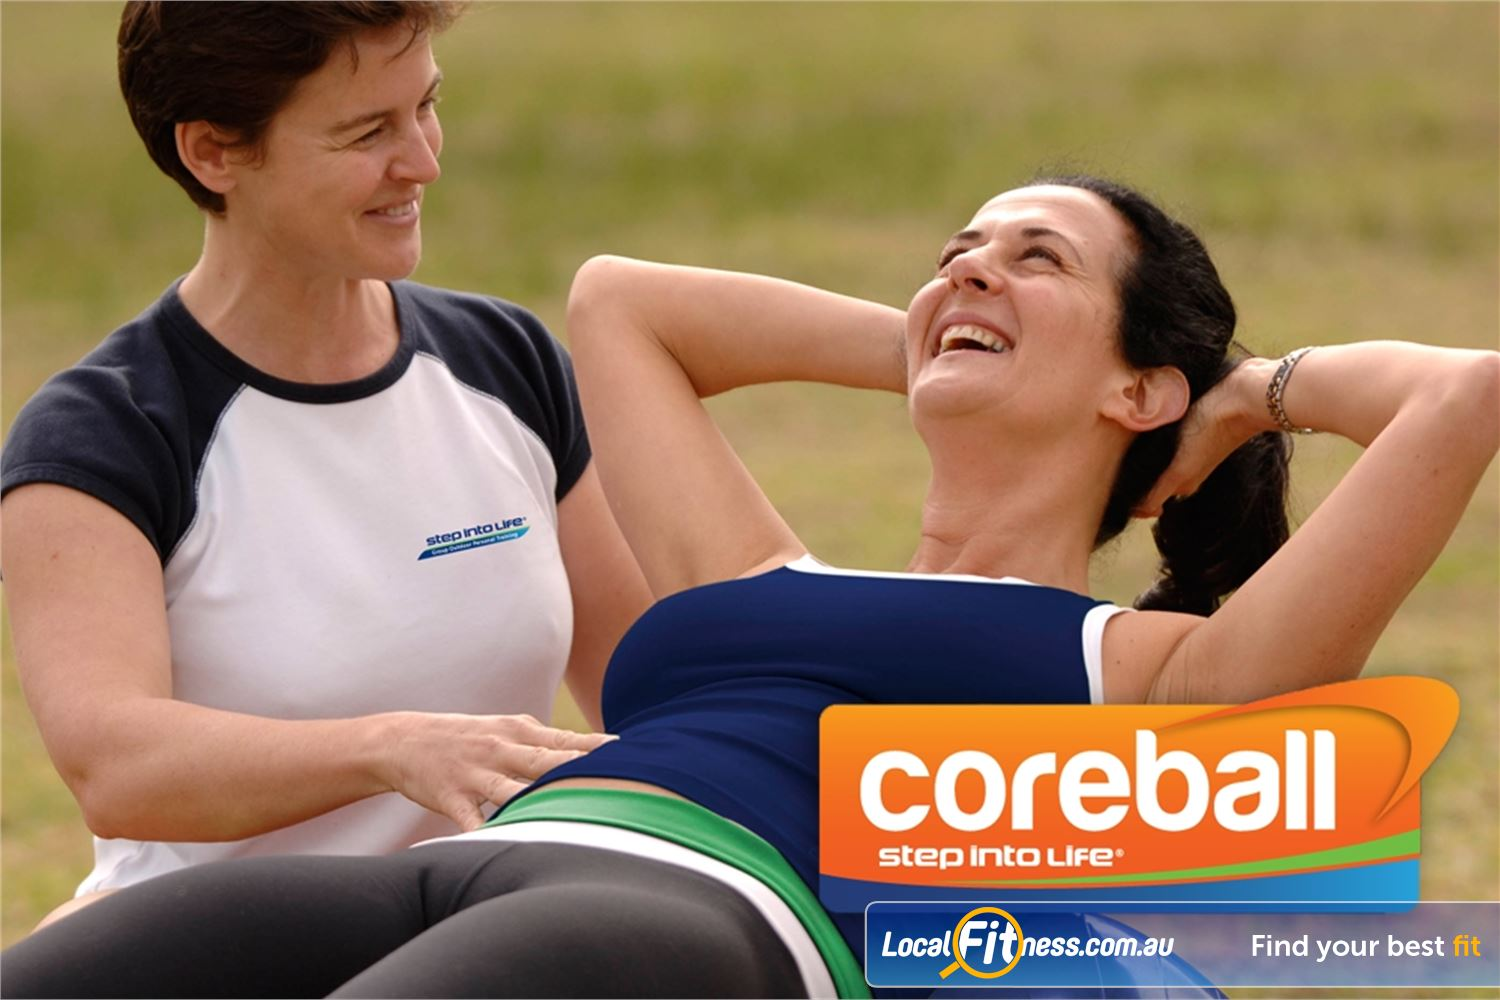 Step into Life Near Essendon North A fit ball used outdoors and combined with dumbbells and cross training.